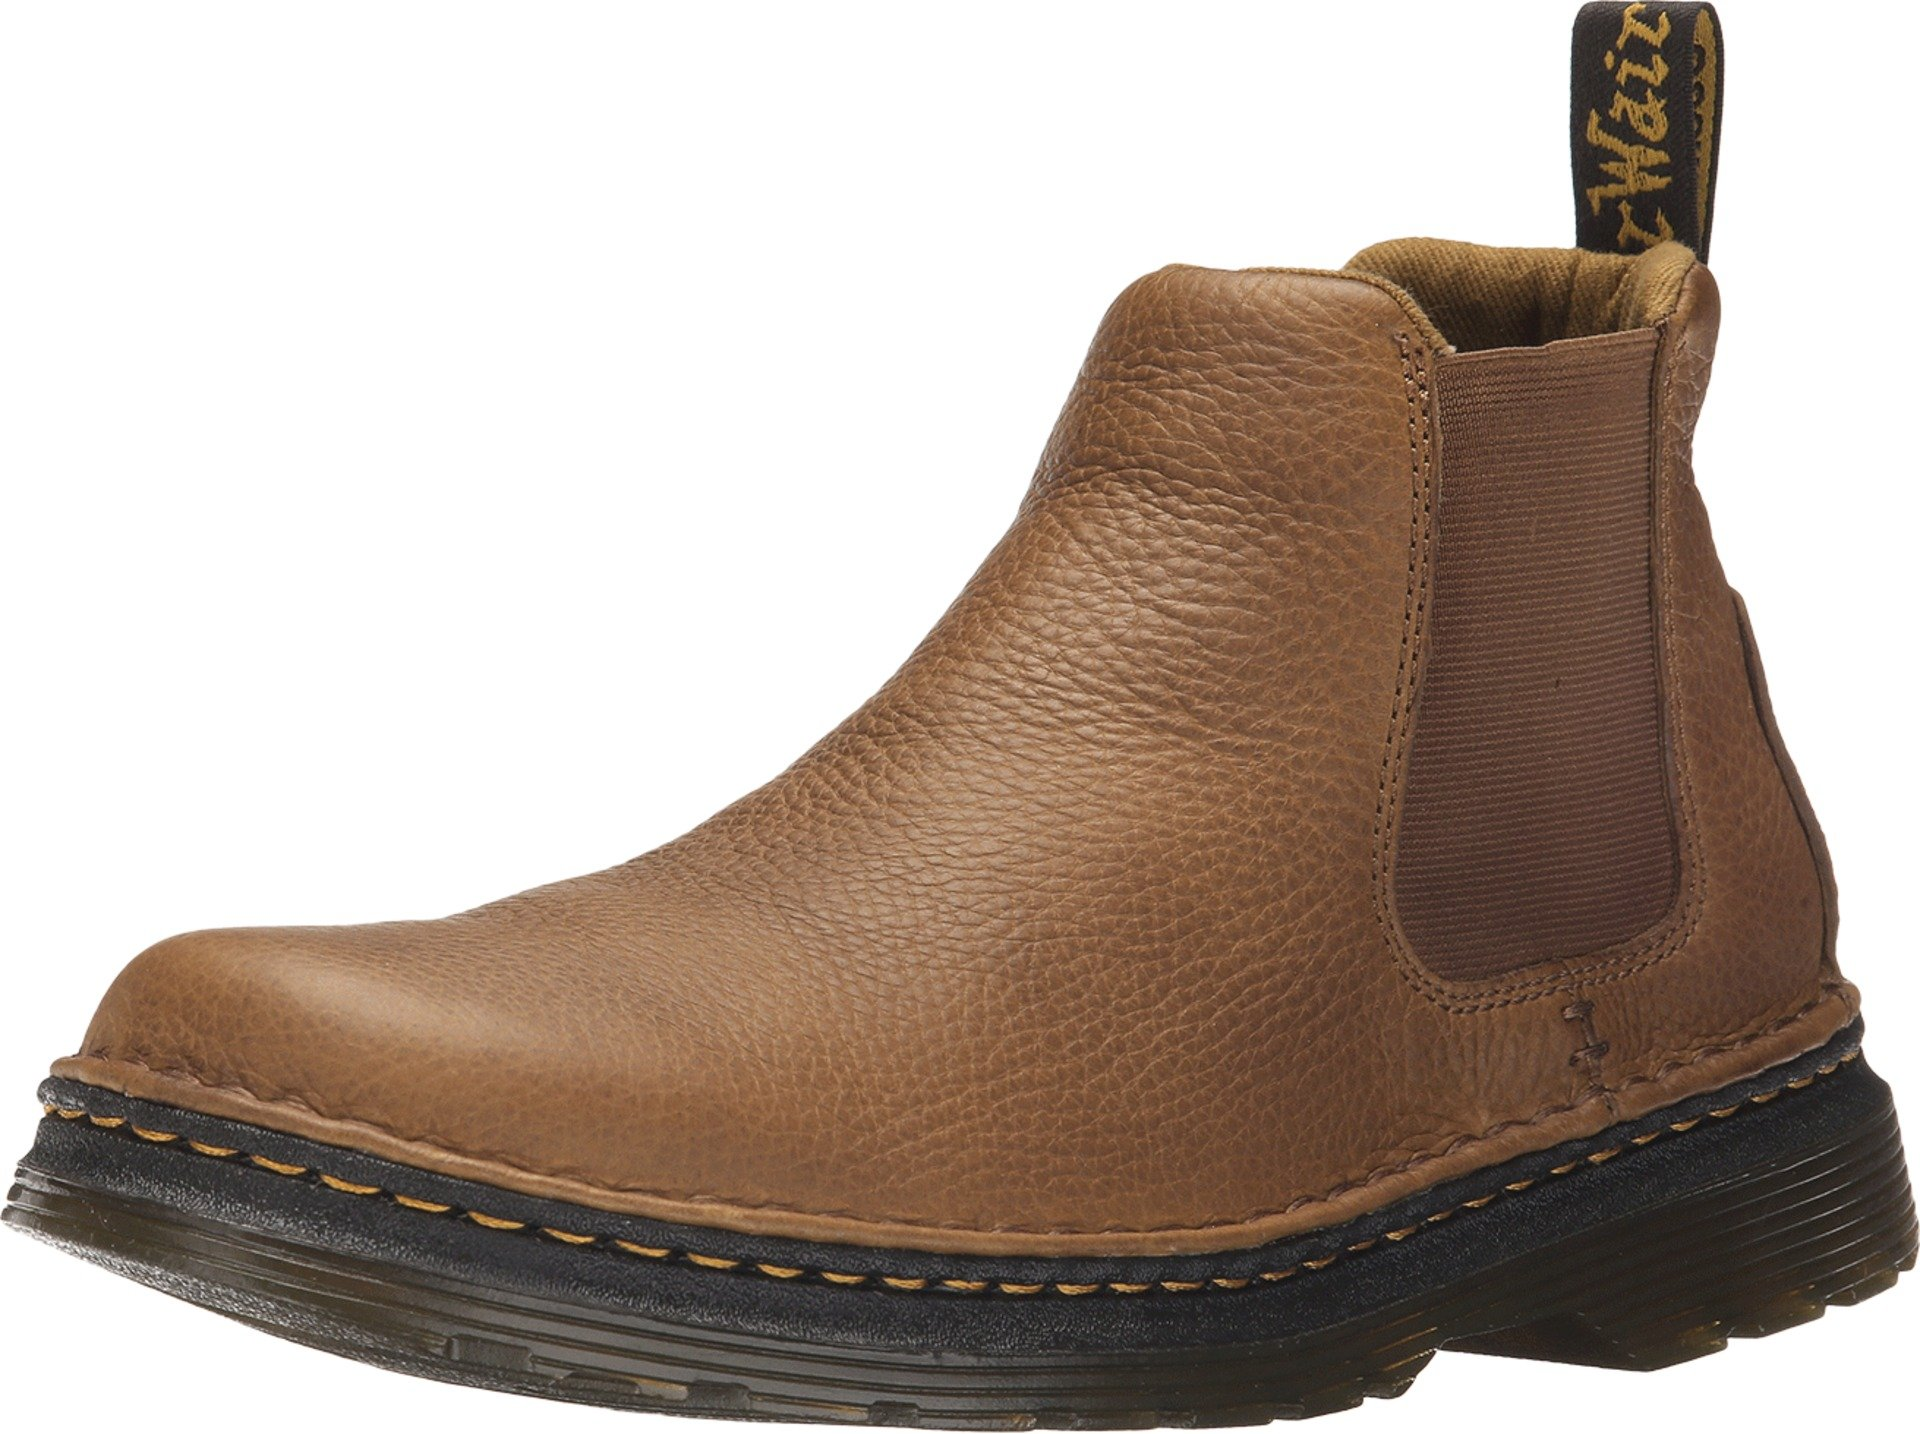 Dr. Martens Men's Oakford Chelsea Boot, Tan, 8 UK/9 M US by Dr. Martens